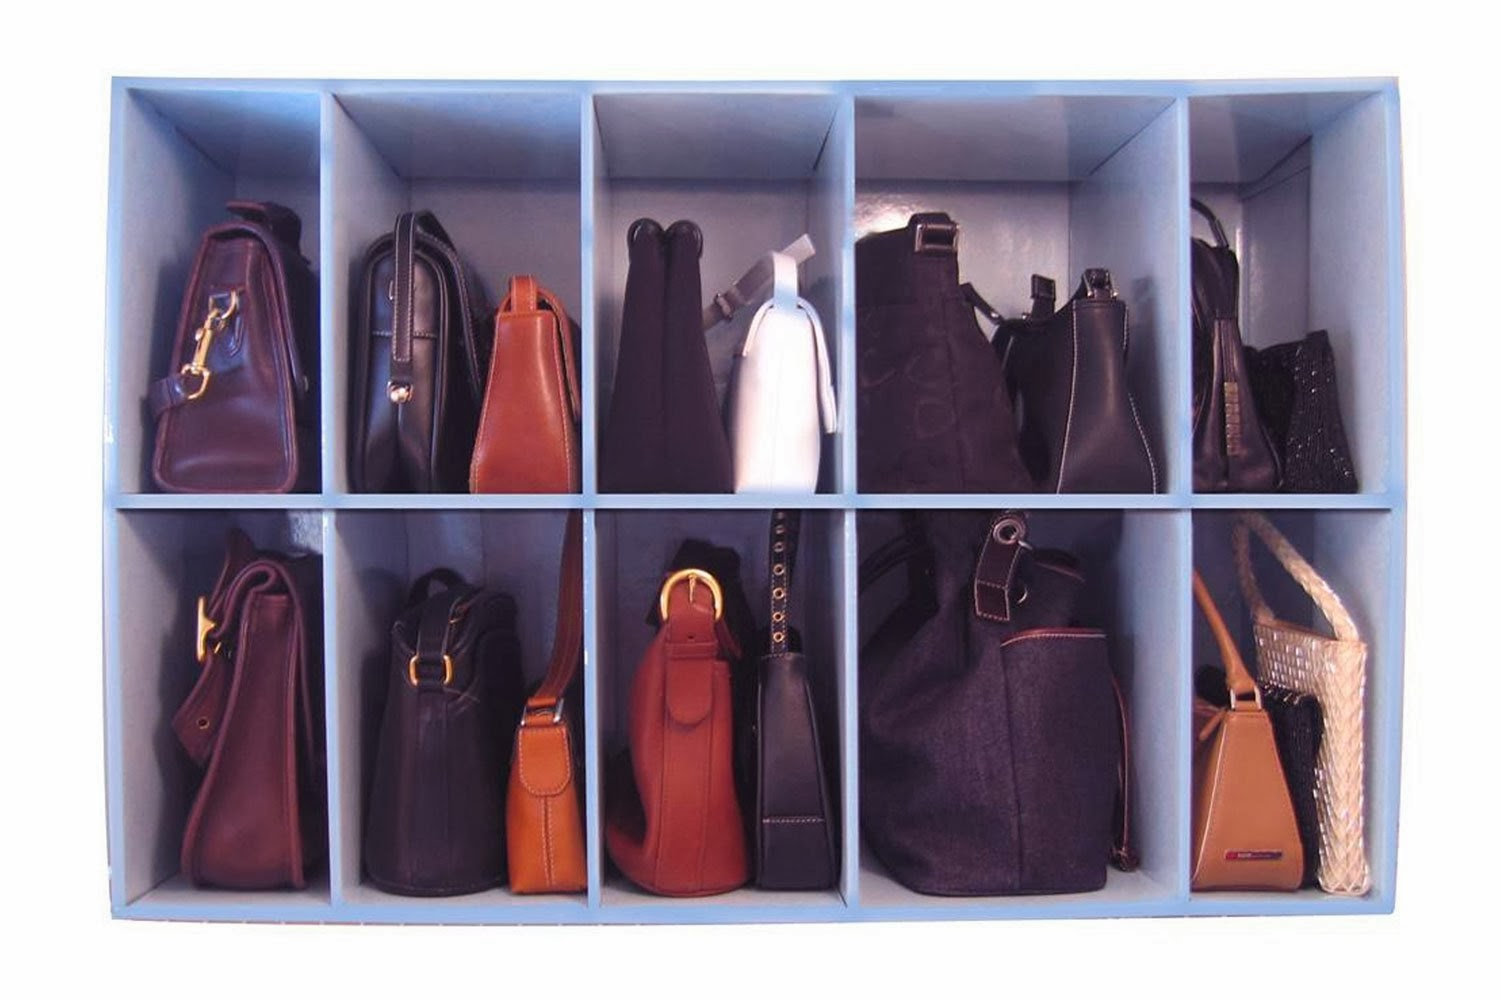 11 Ways To Organize Your Purse Organizing Made Fun 11 Ways To Organize Your Purse